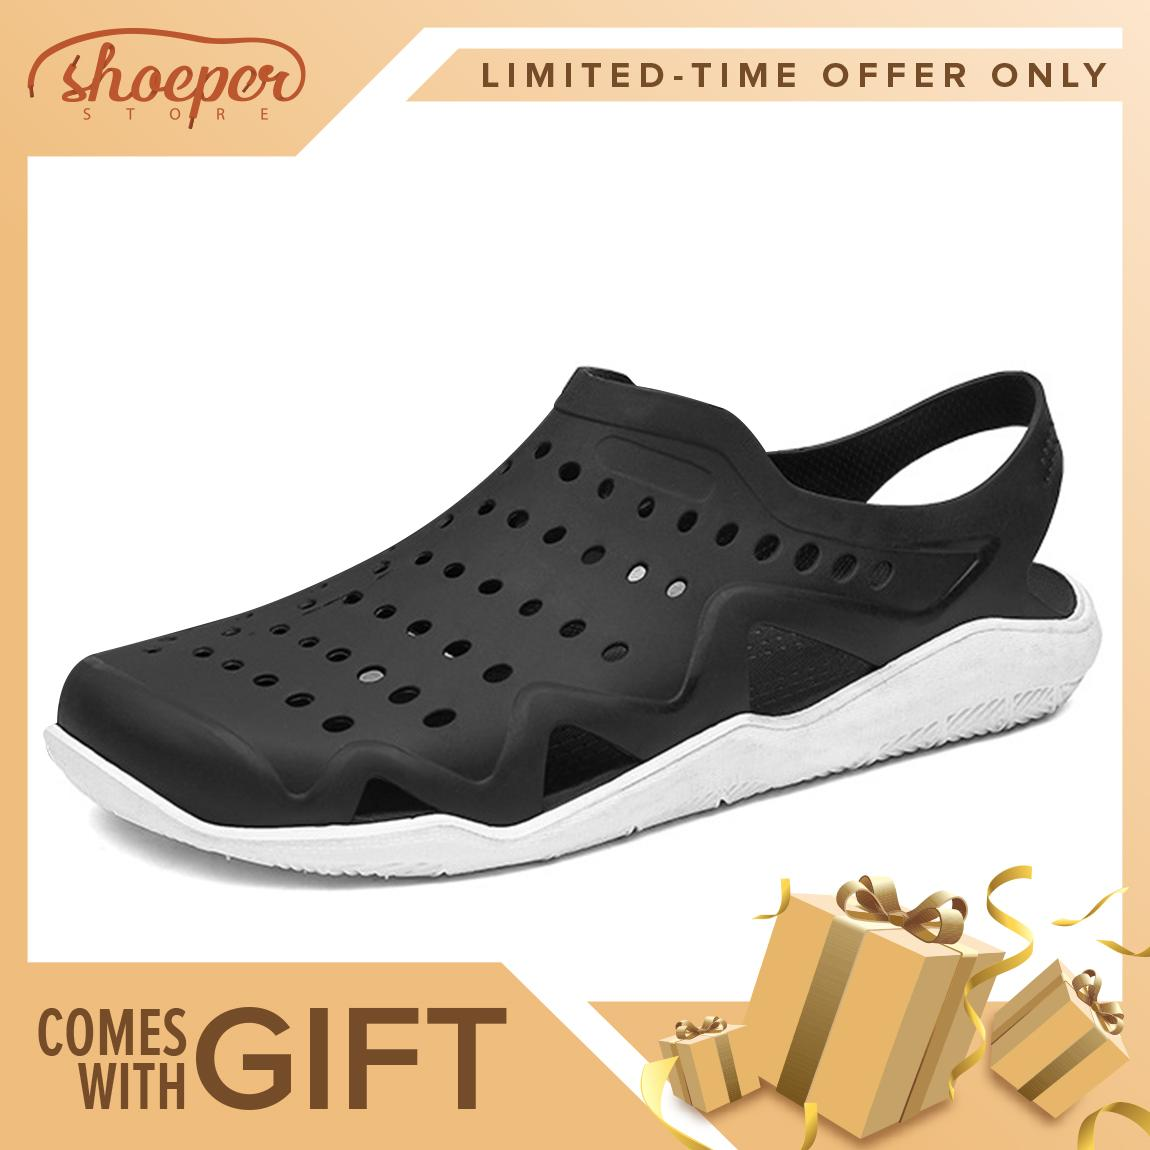 Shoeper Jxs-2 Summer Sandals For Men By Shoeper Store.